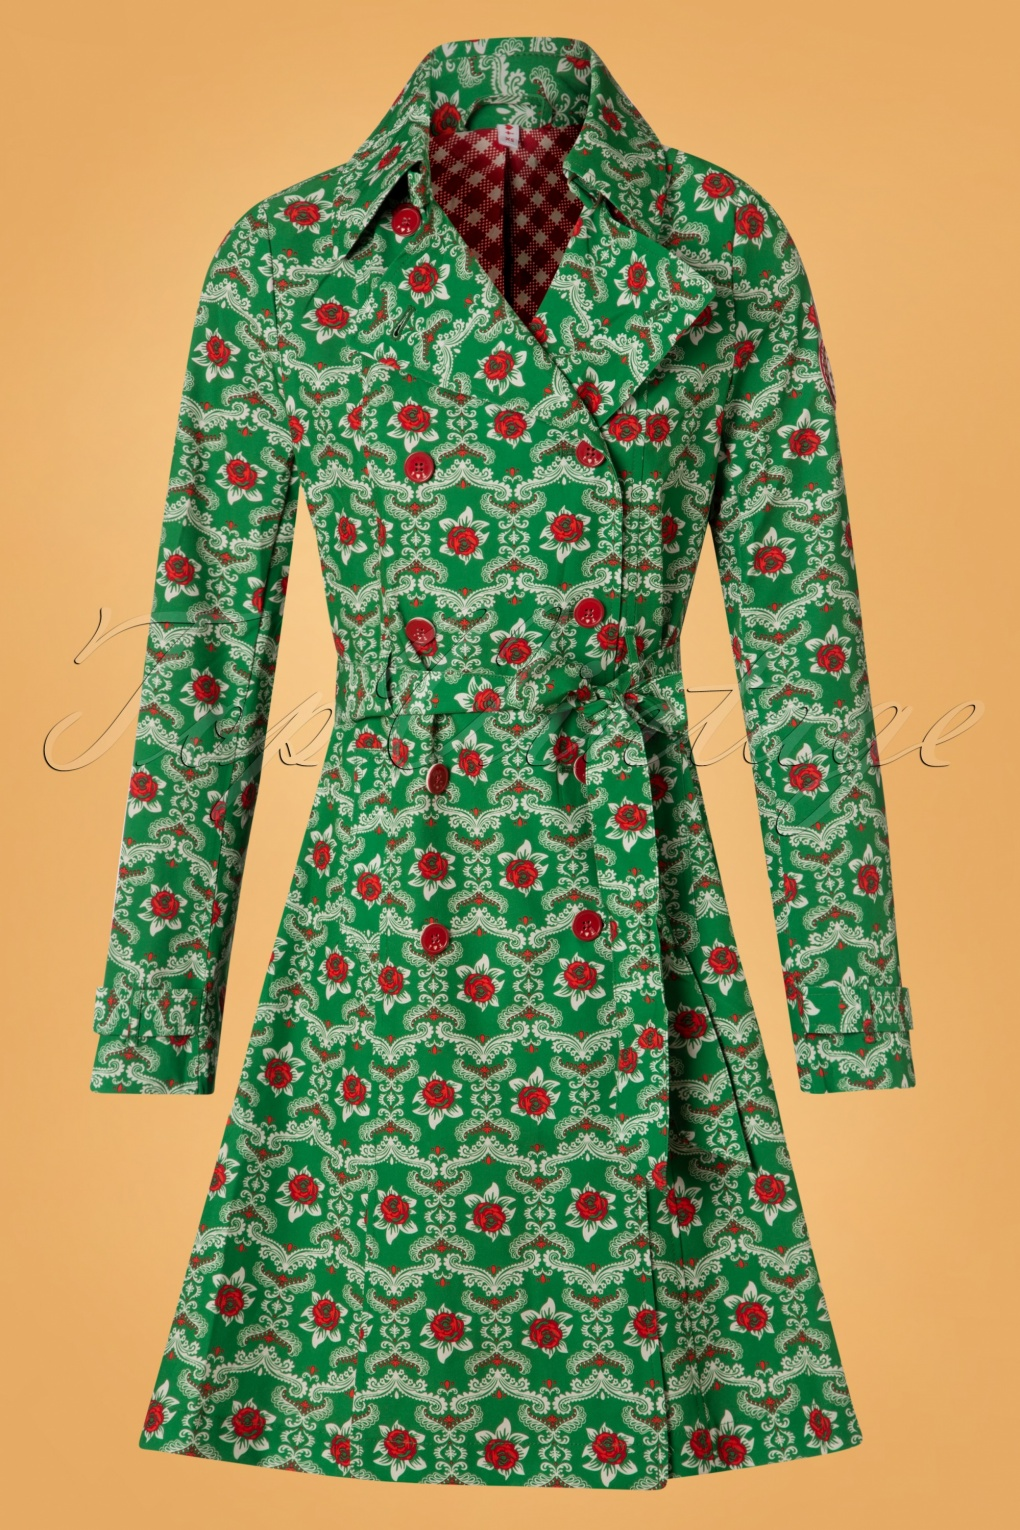 Vintage Coats & Jackets | Retro Coats and Jackets 60s Casablanca Souvenir Trench Coat in Highnoon Saloon Green £142.84 AT vintagedancer.com